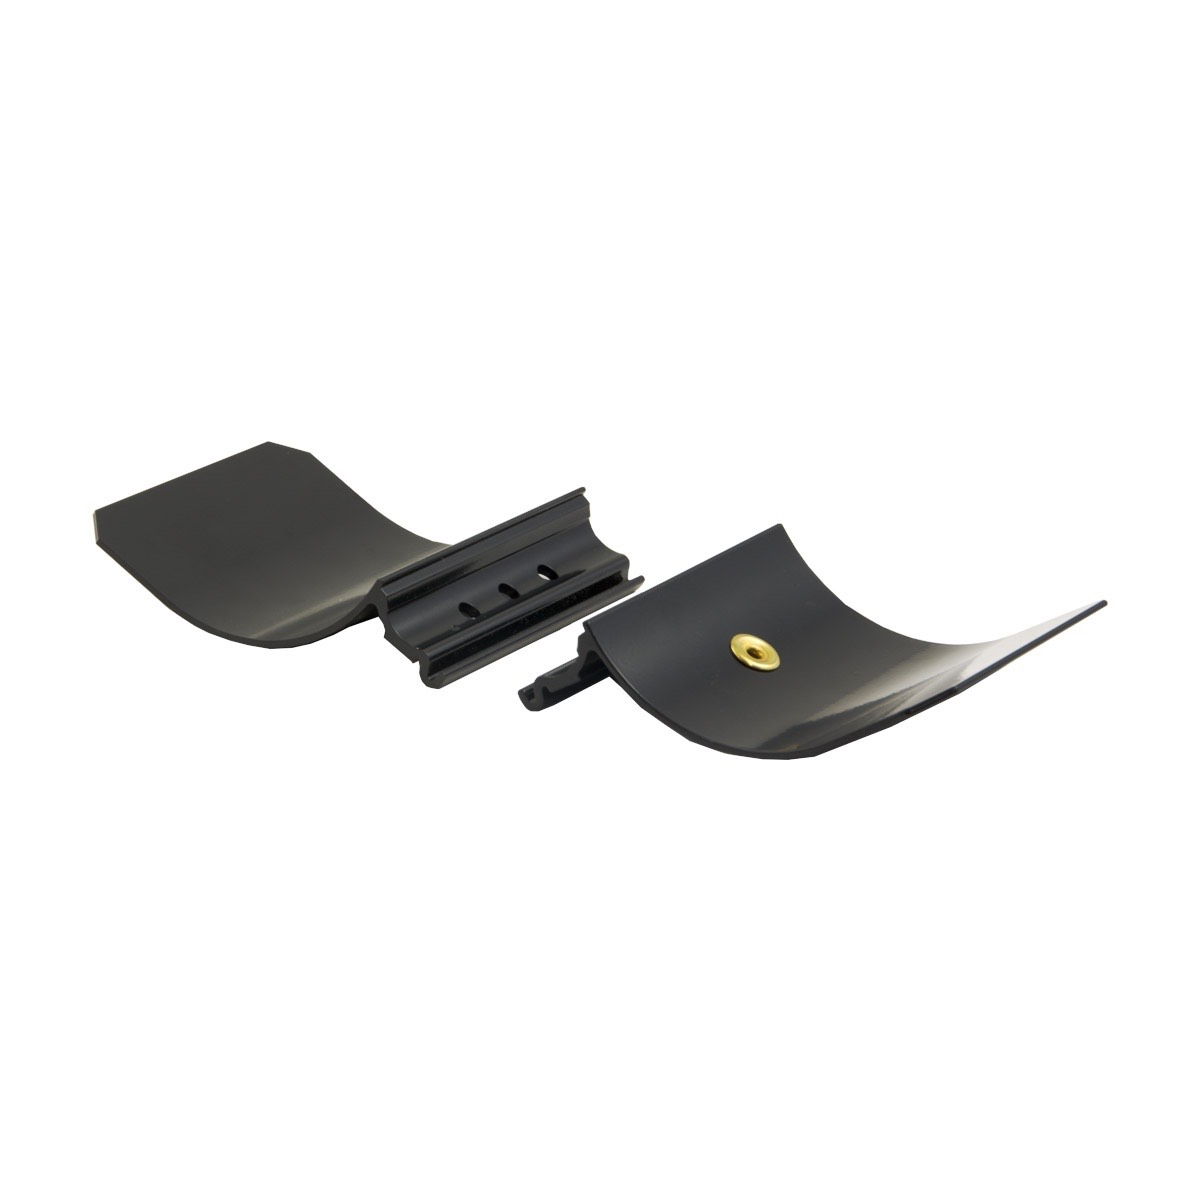 8001-0014, Black 3-Hole Armrest for GPX Series